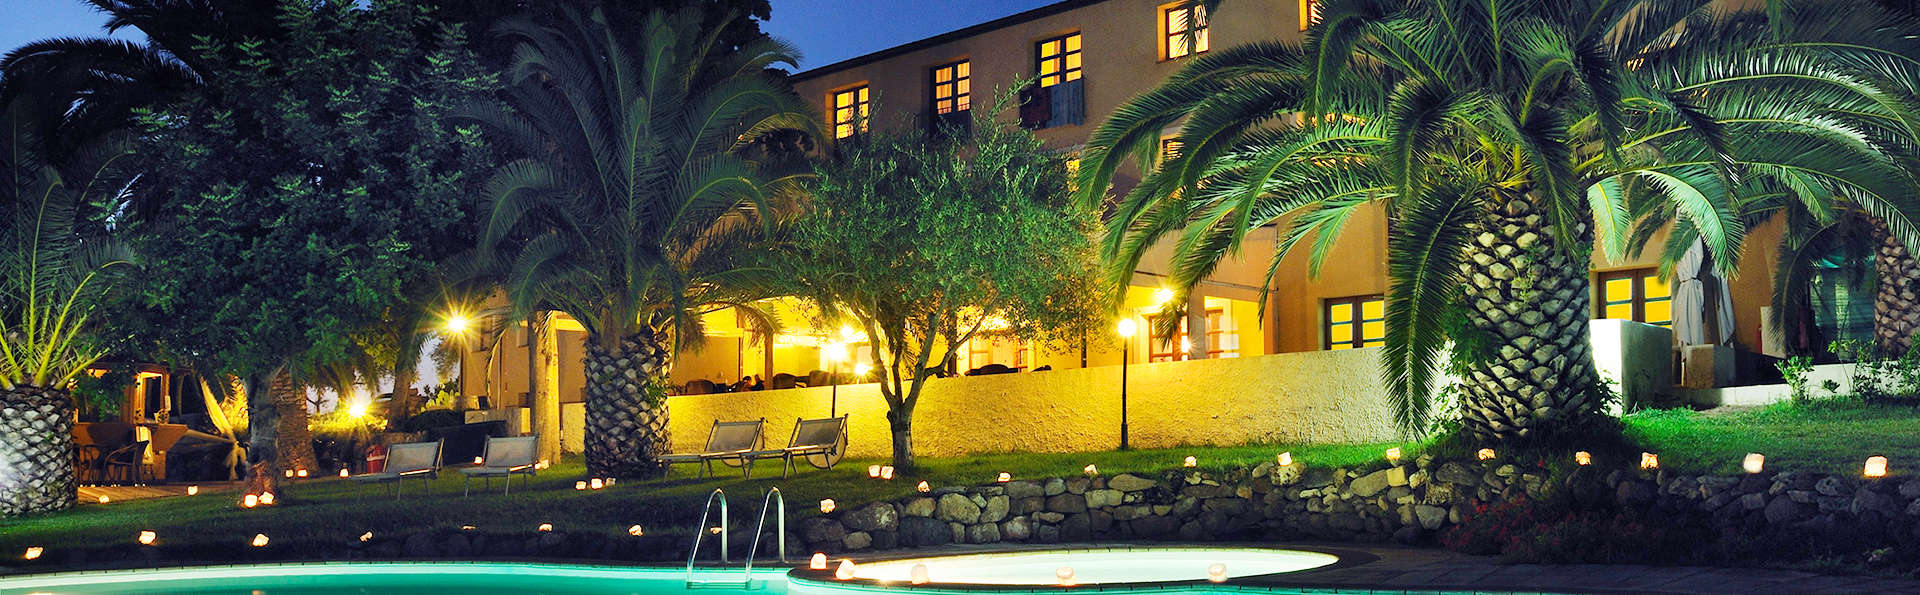 Alghero Resort Country Hotel - edit_swimmingpool.jpg